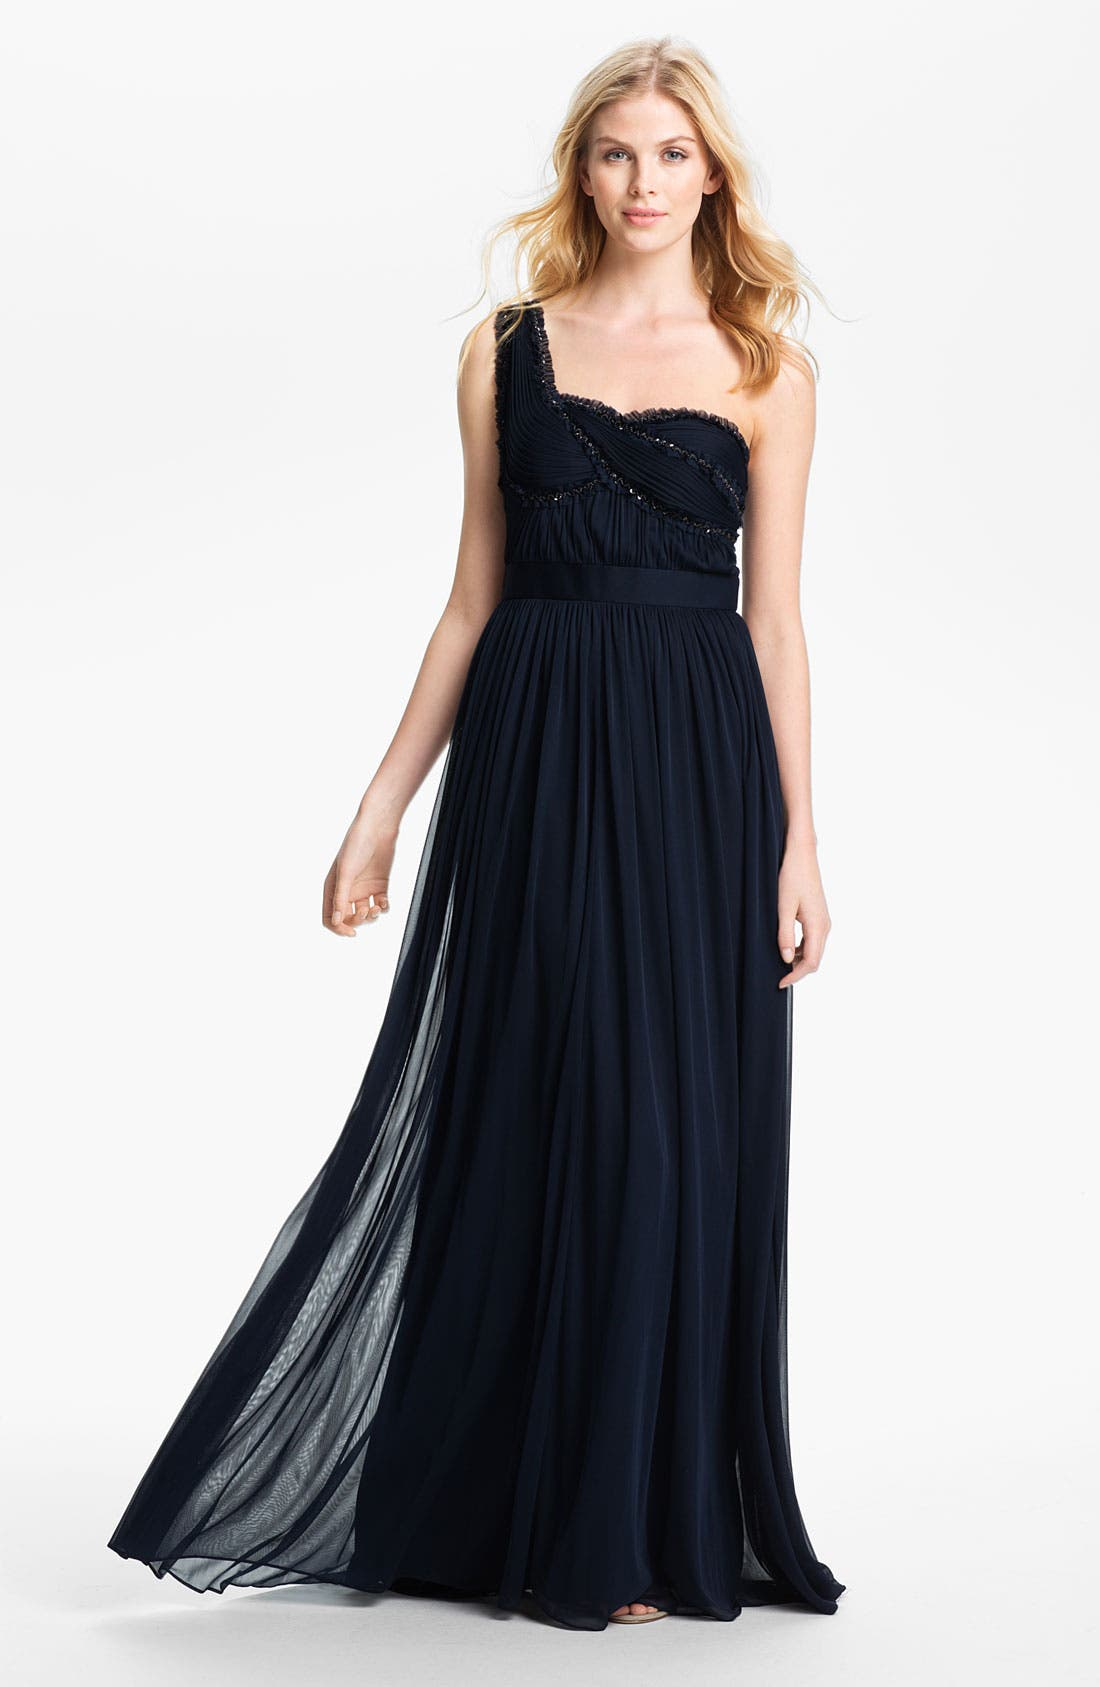 Alternate Image 1 Selected - Adrianna Papell One Shoulder Embellished Bodice Pleated Gown